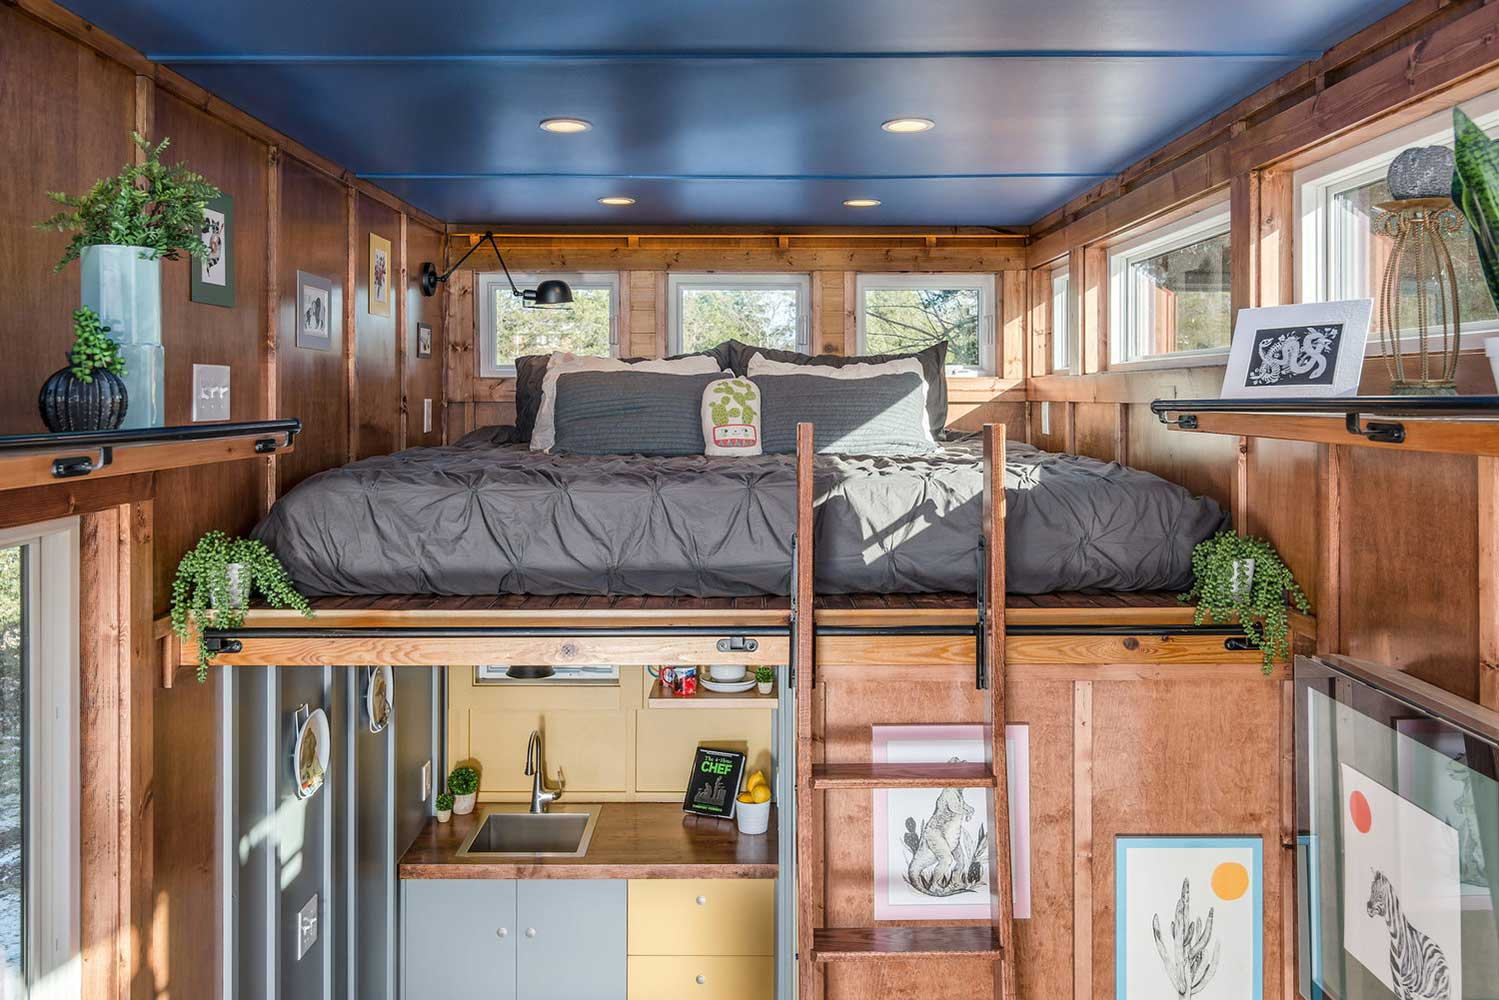 Ideal New Frontier Tiny Homes Youtube New Frontier Tiny Homes Sale Writers Hit Market Cornelia Cabin From New Frontier Tiny Homes Tiny Homes Designed curbed New Frontier Tiny Homes